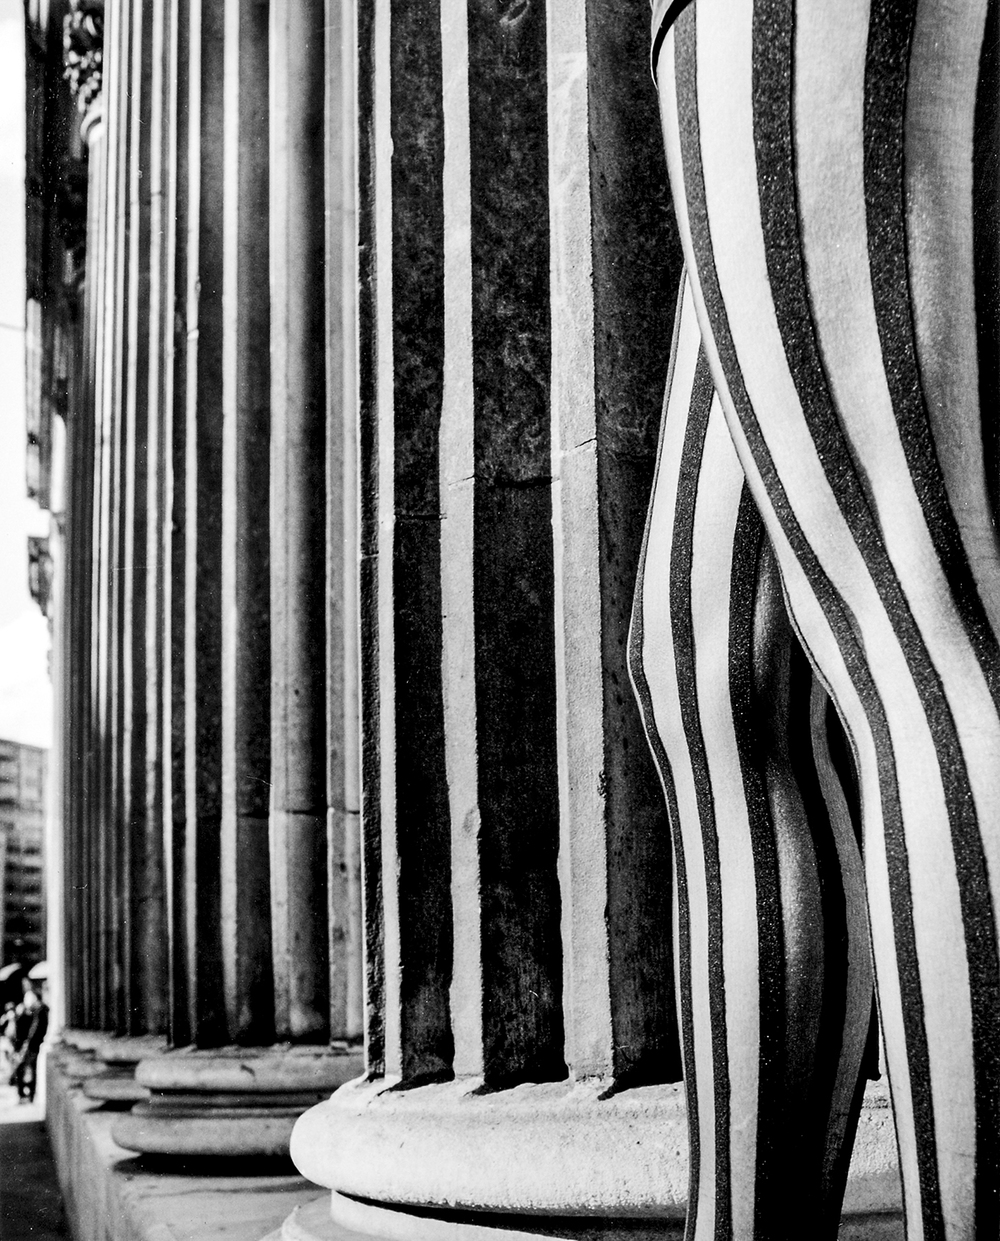 Vertical Stripes   Holly  –   Ionic Columns, EC2